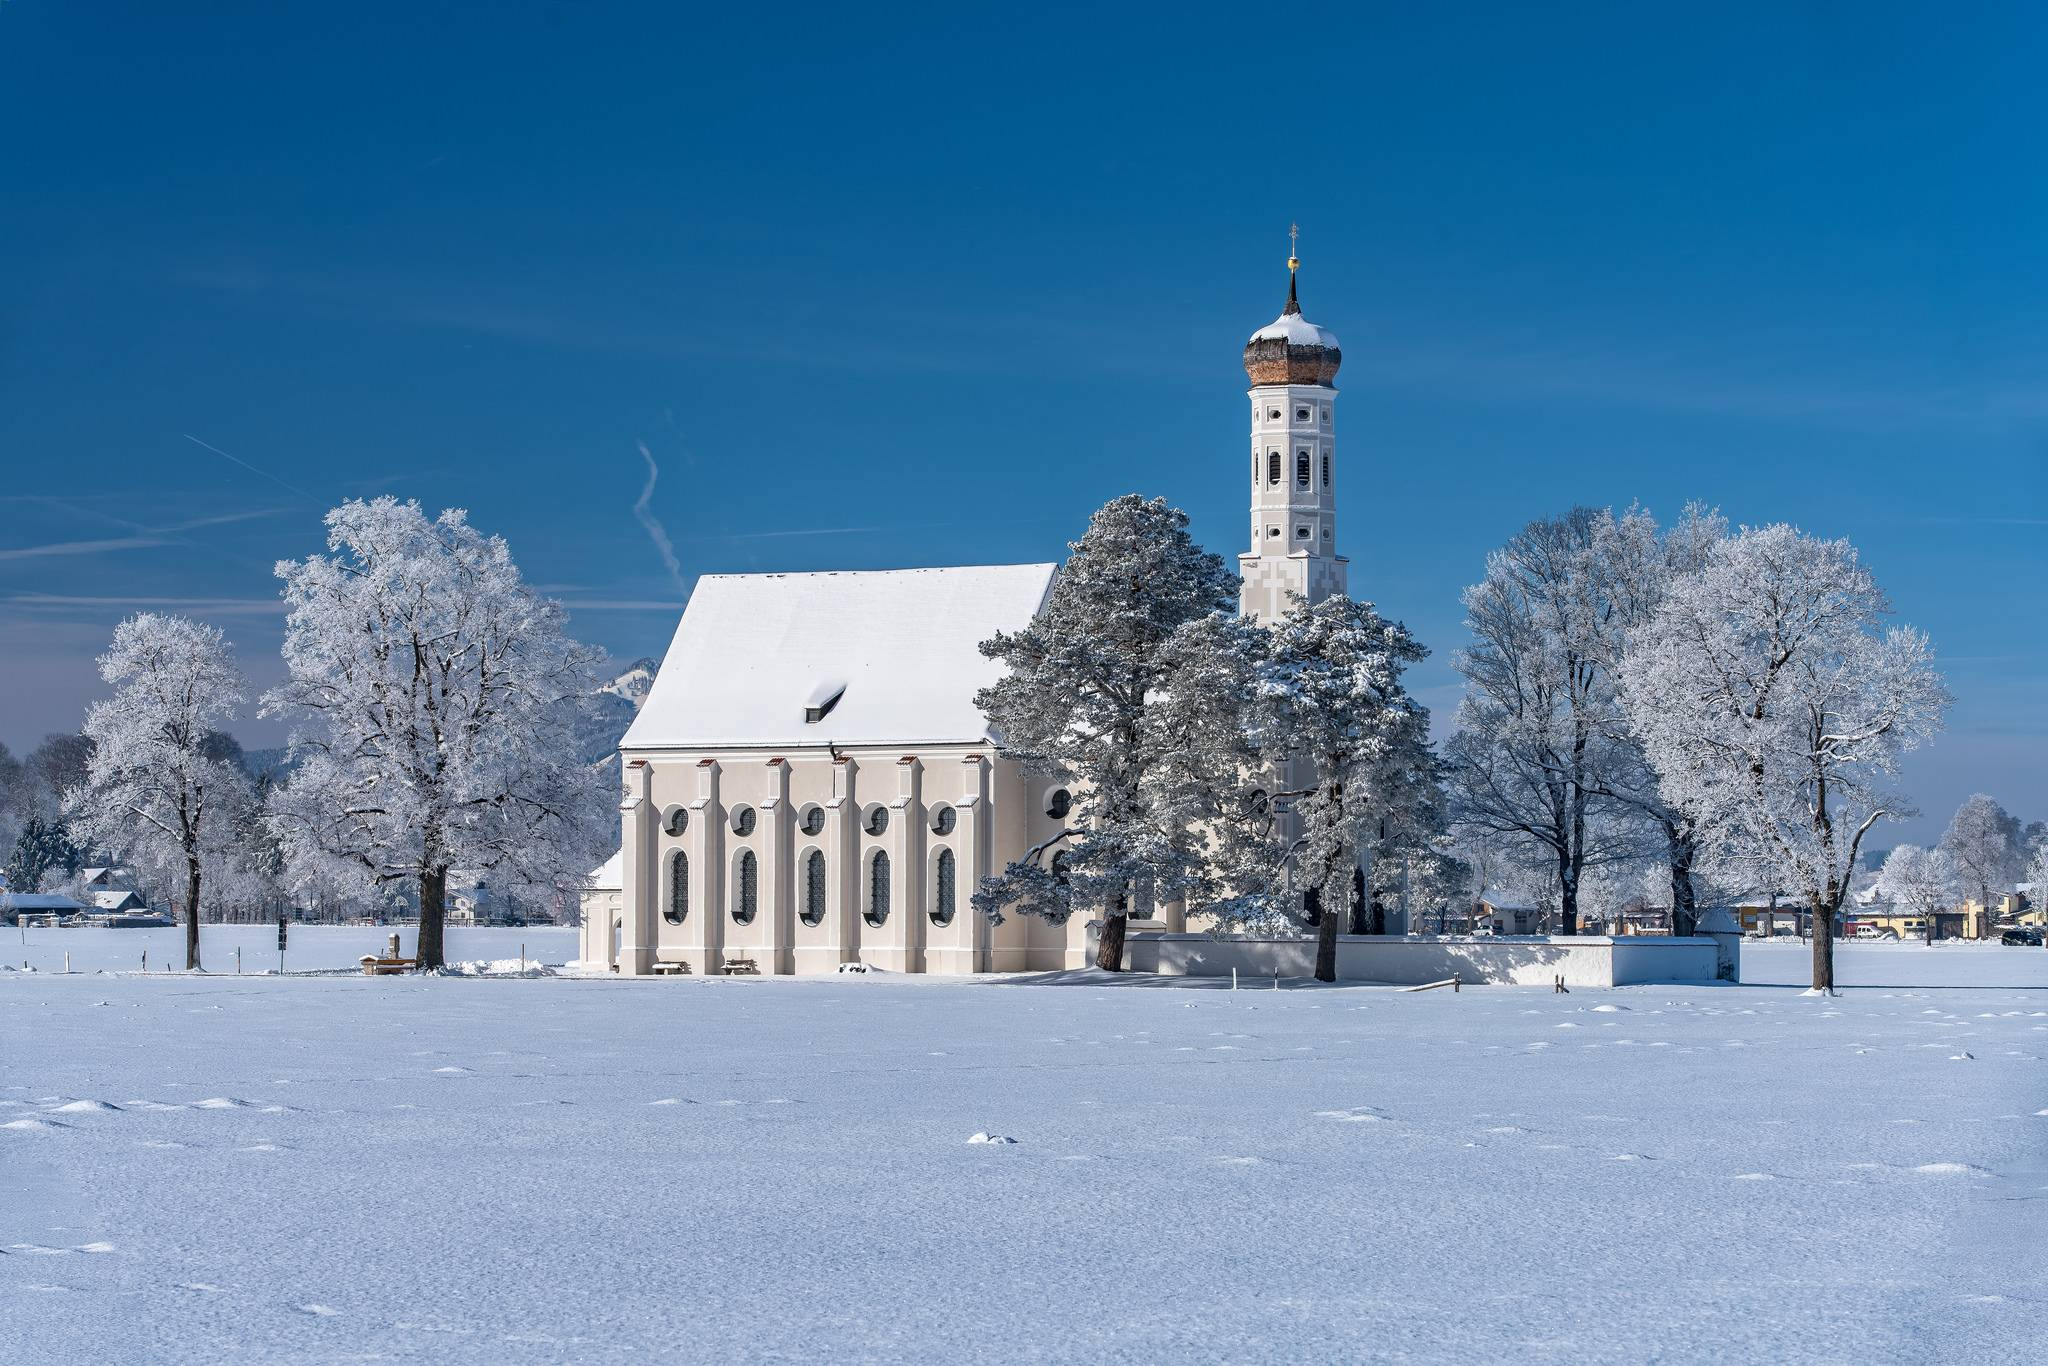 St Coloman Church, Bavaria, Германия